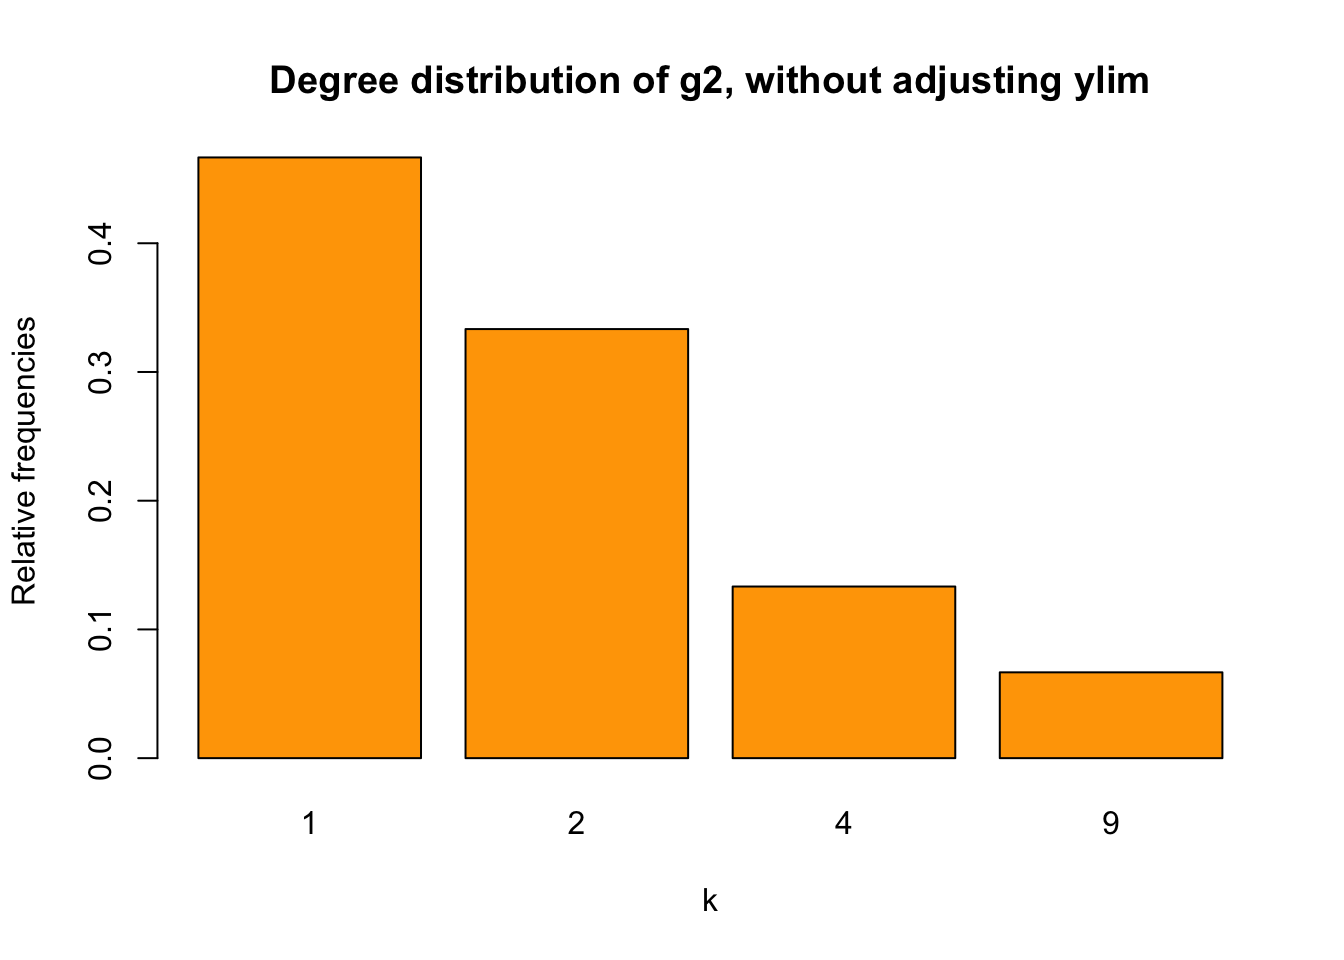 bar chart for g2 without adusting ylim